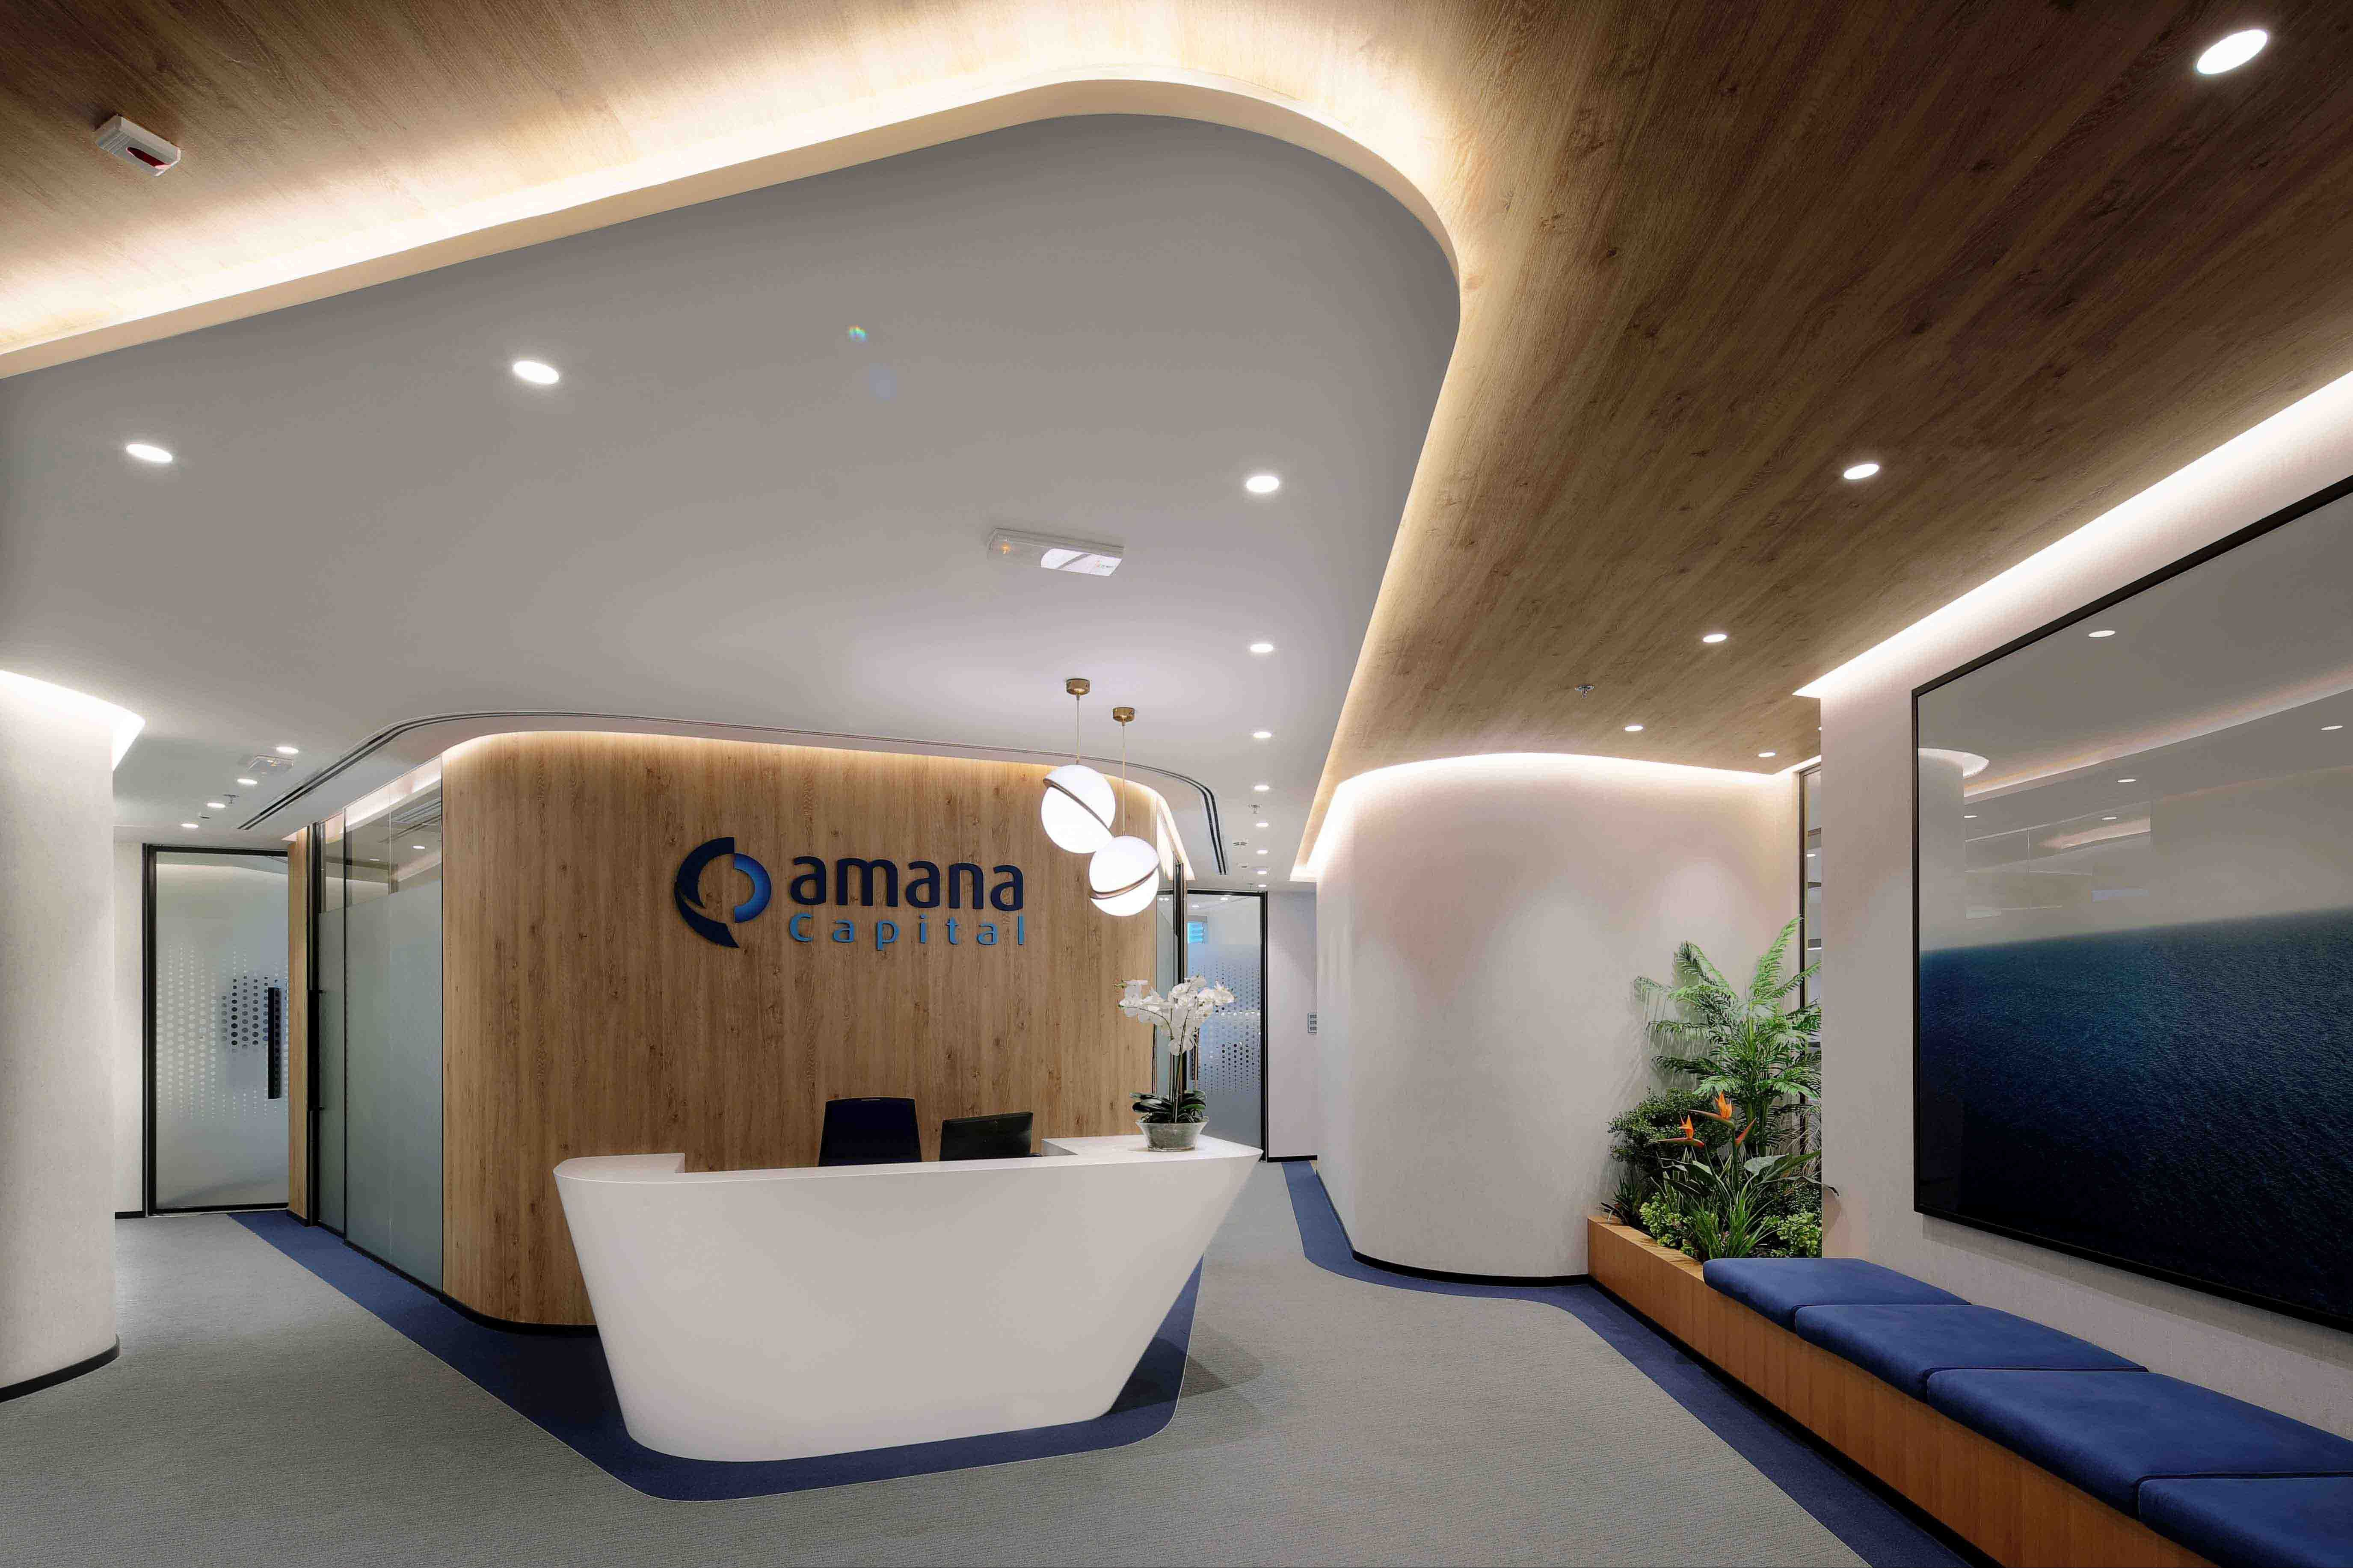 Amana capital office designed and built by swiss bureau interior